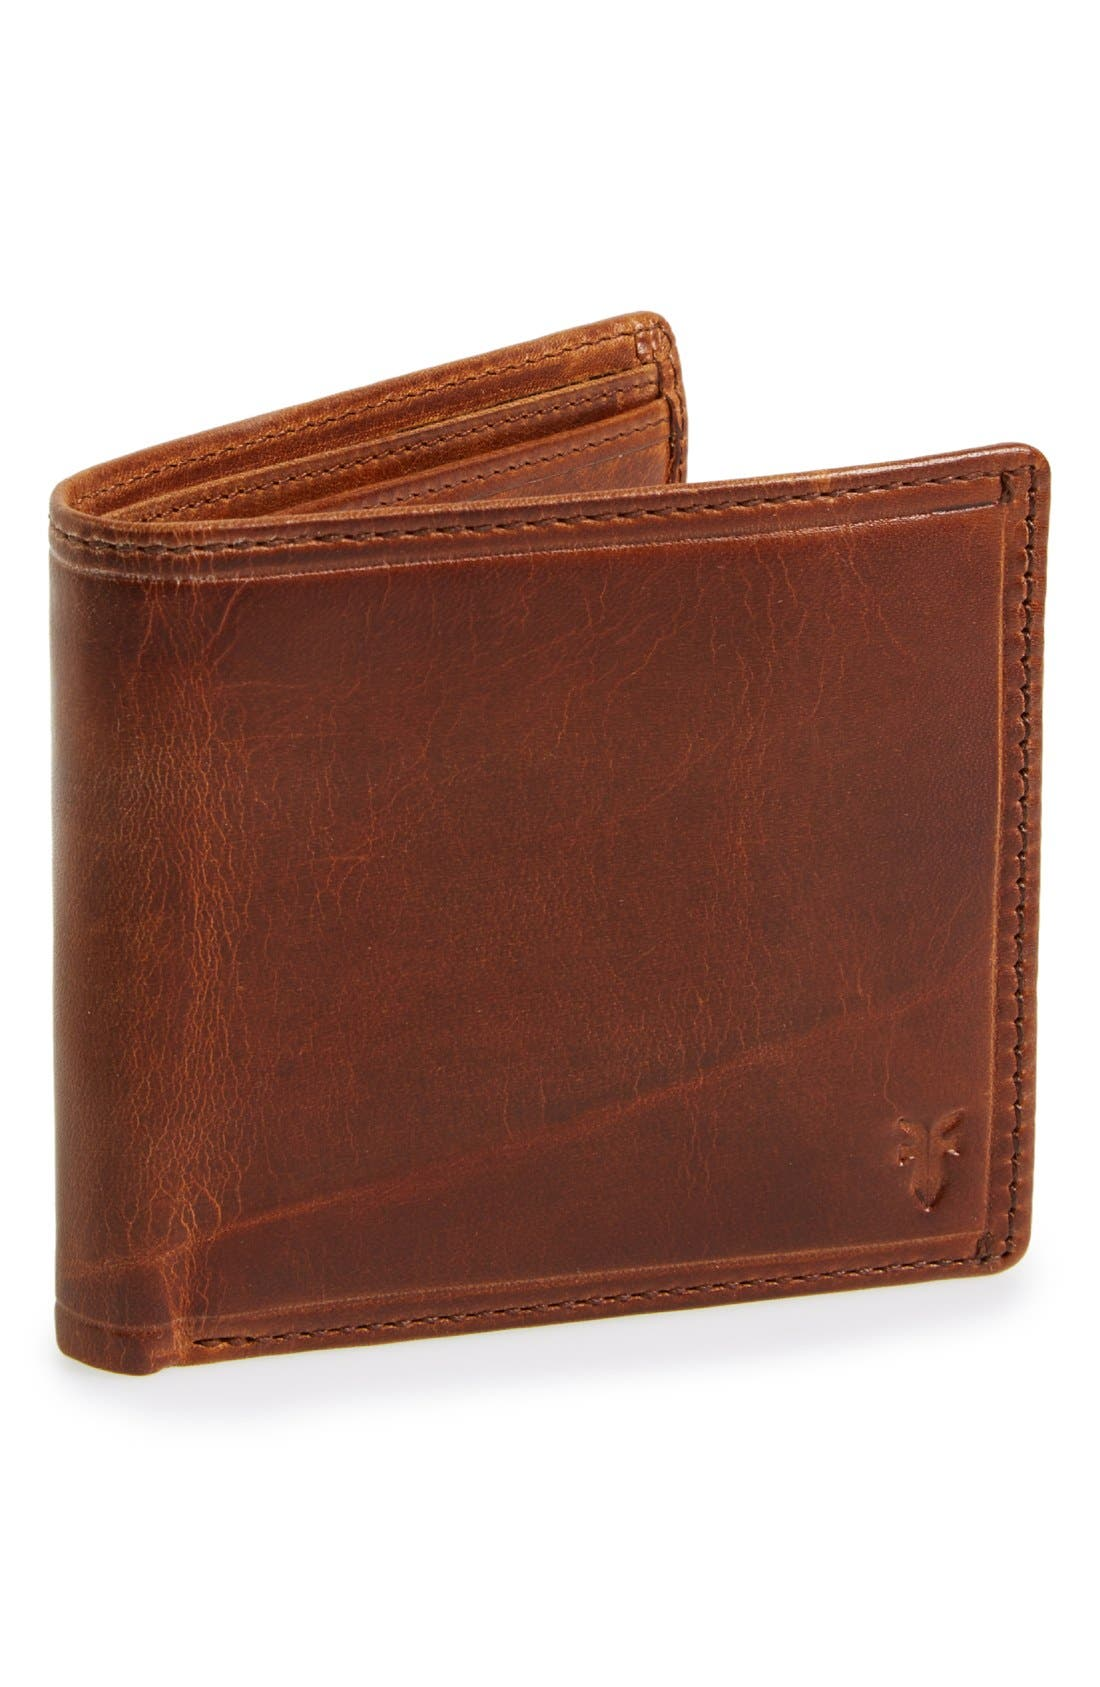 'Logan' Leather Billfold Wallet,                             Main thumbnail 1, color,                             Cognac